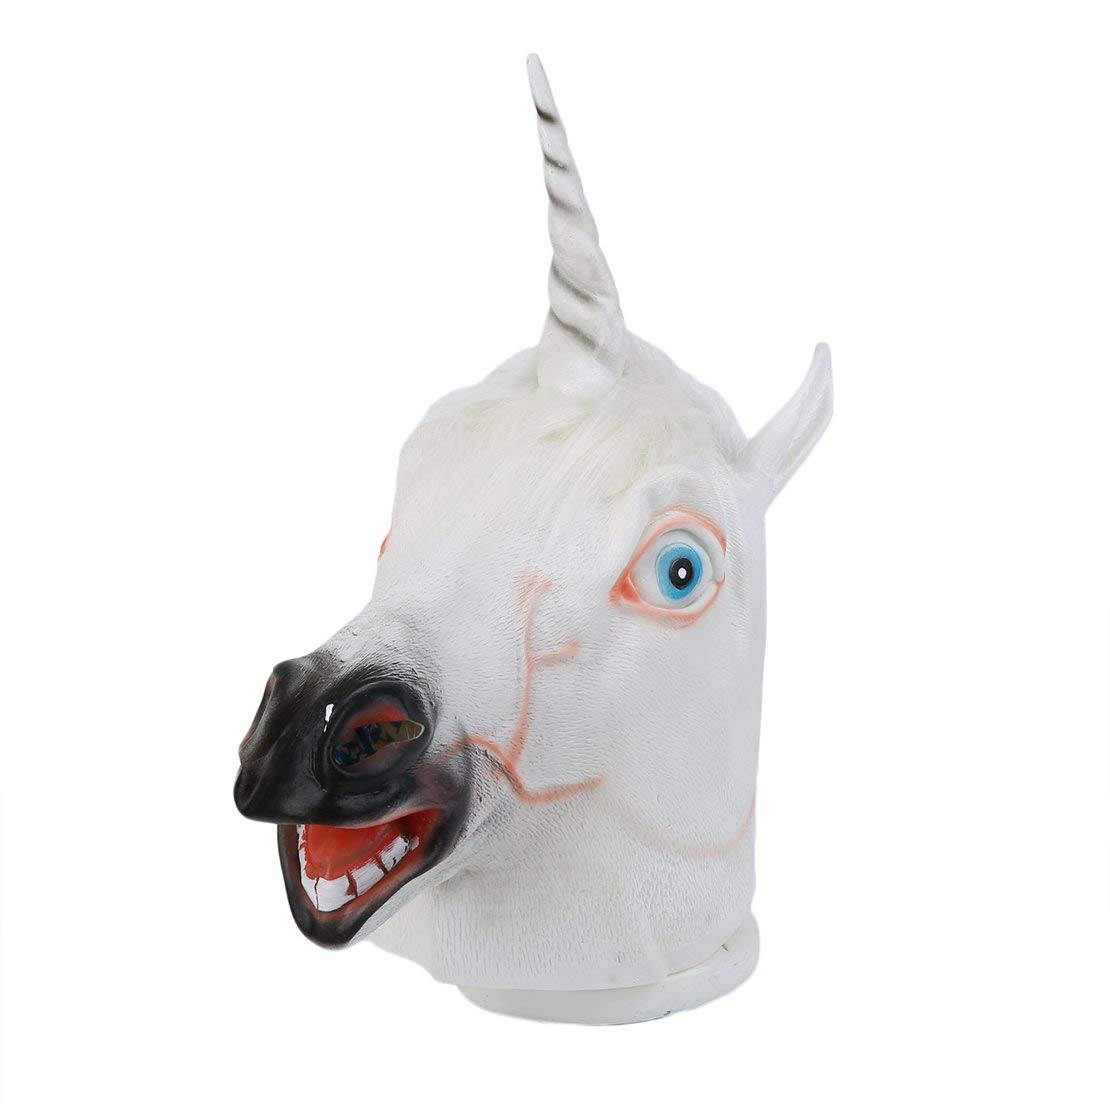 Sanzhileg Funny Creative Halloween White Unicorn Horse Head Mask Latex para un Loco Cosplay Party Costume Dress Mask: Amazon.es: Juguetes y juegos